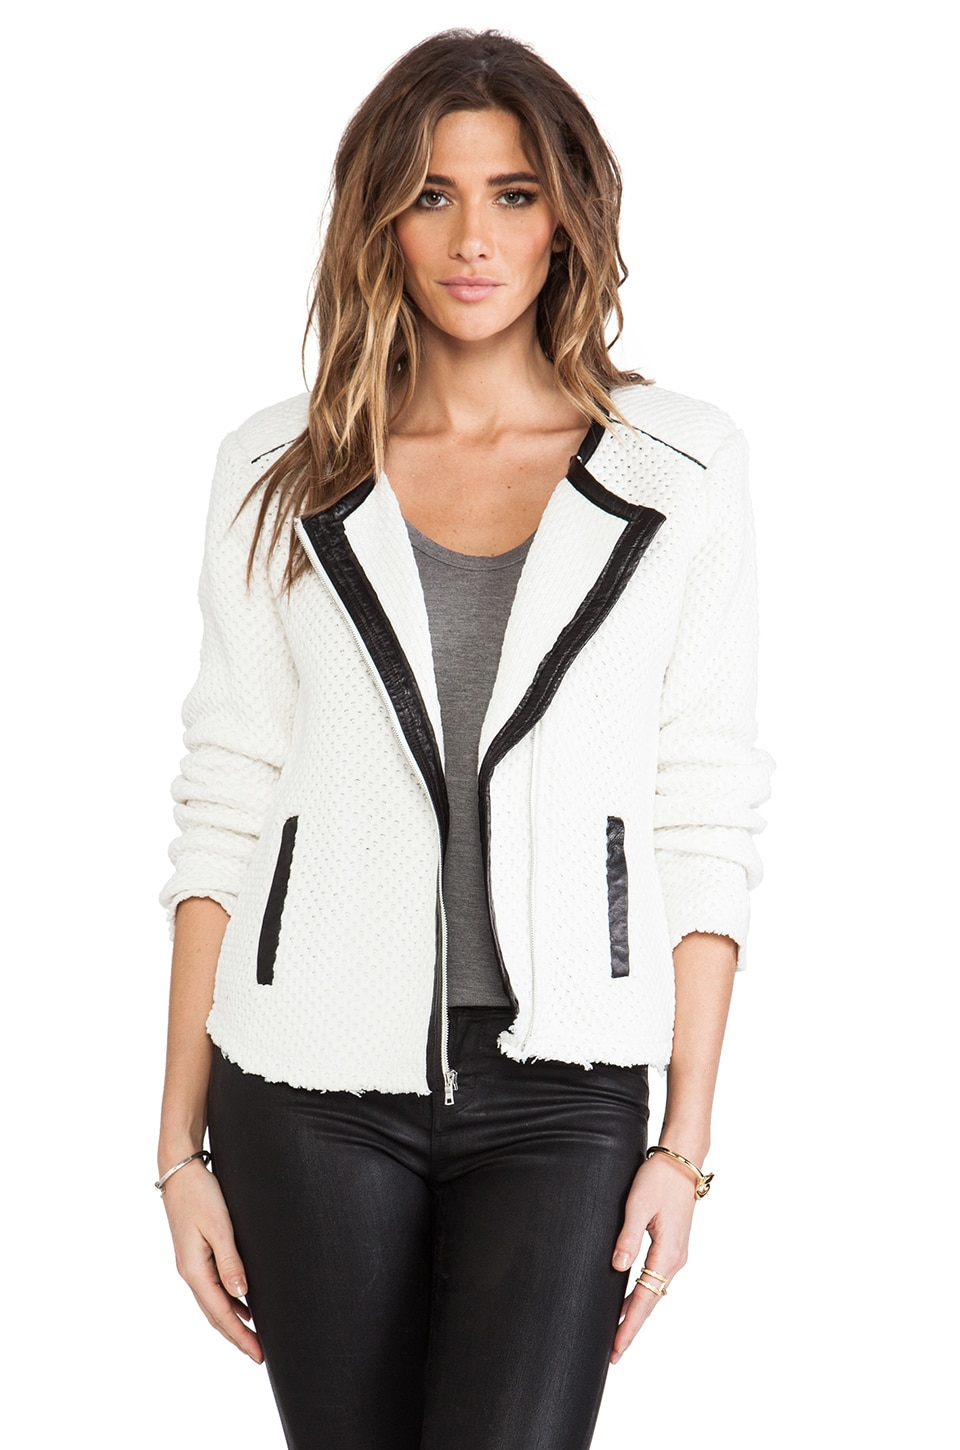 TOWNSEN Speakeasy Jacket in White